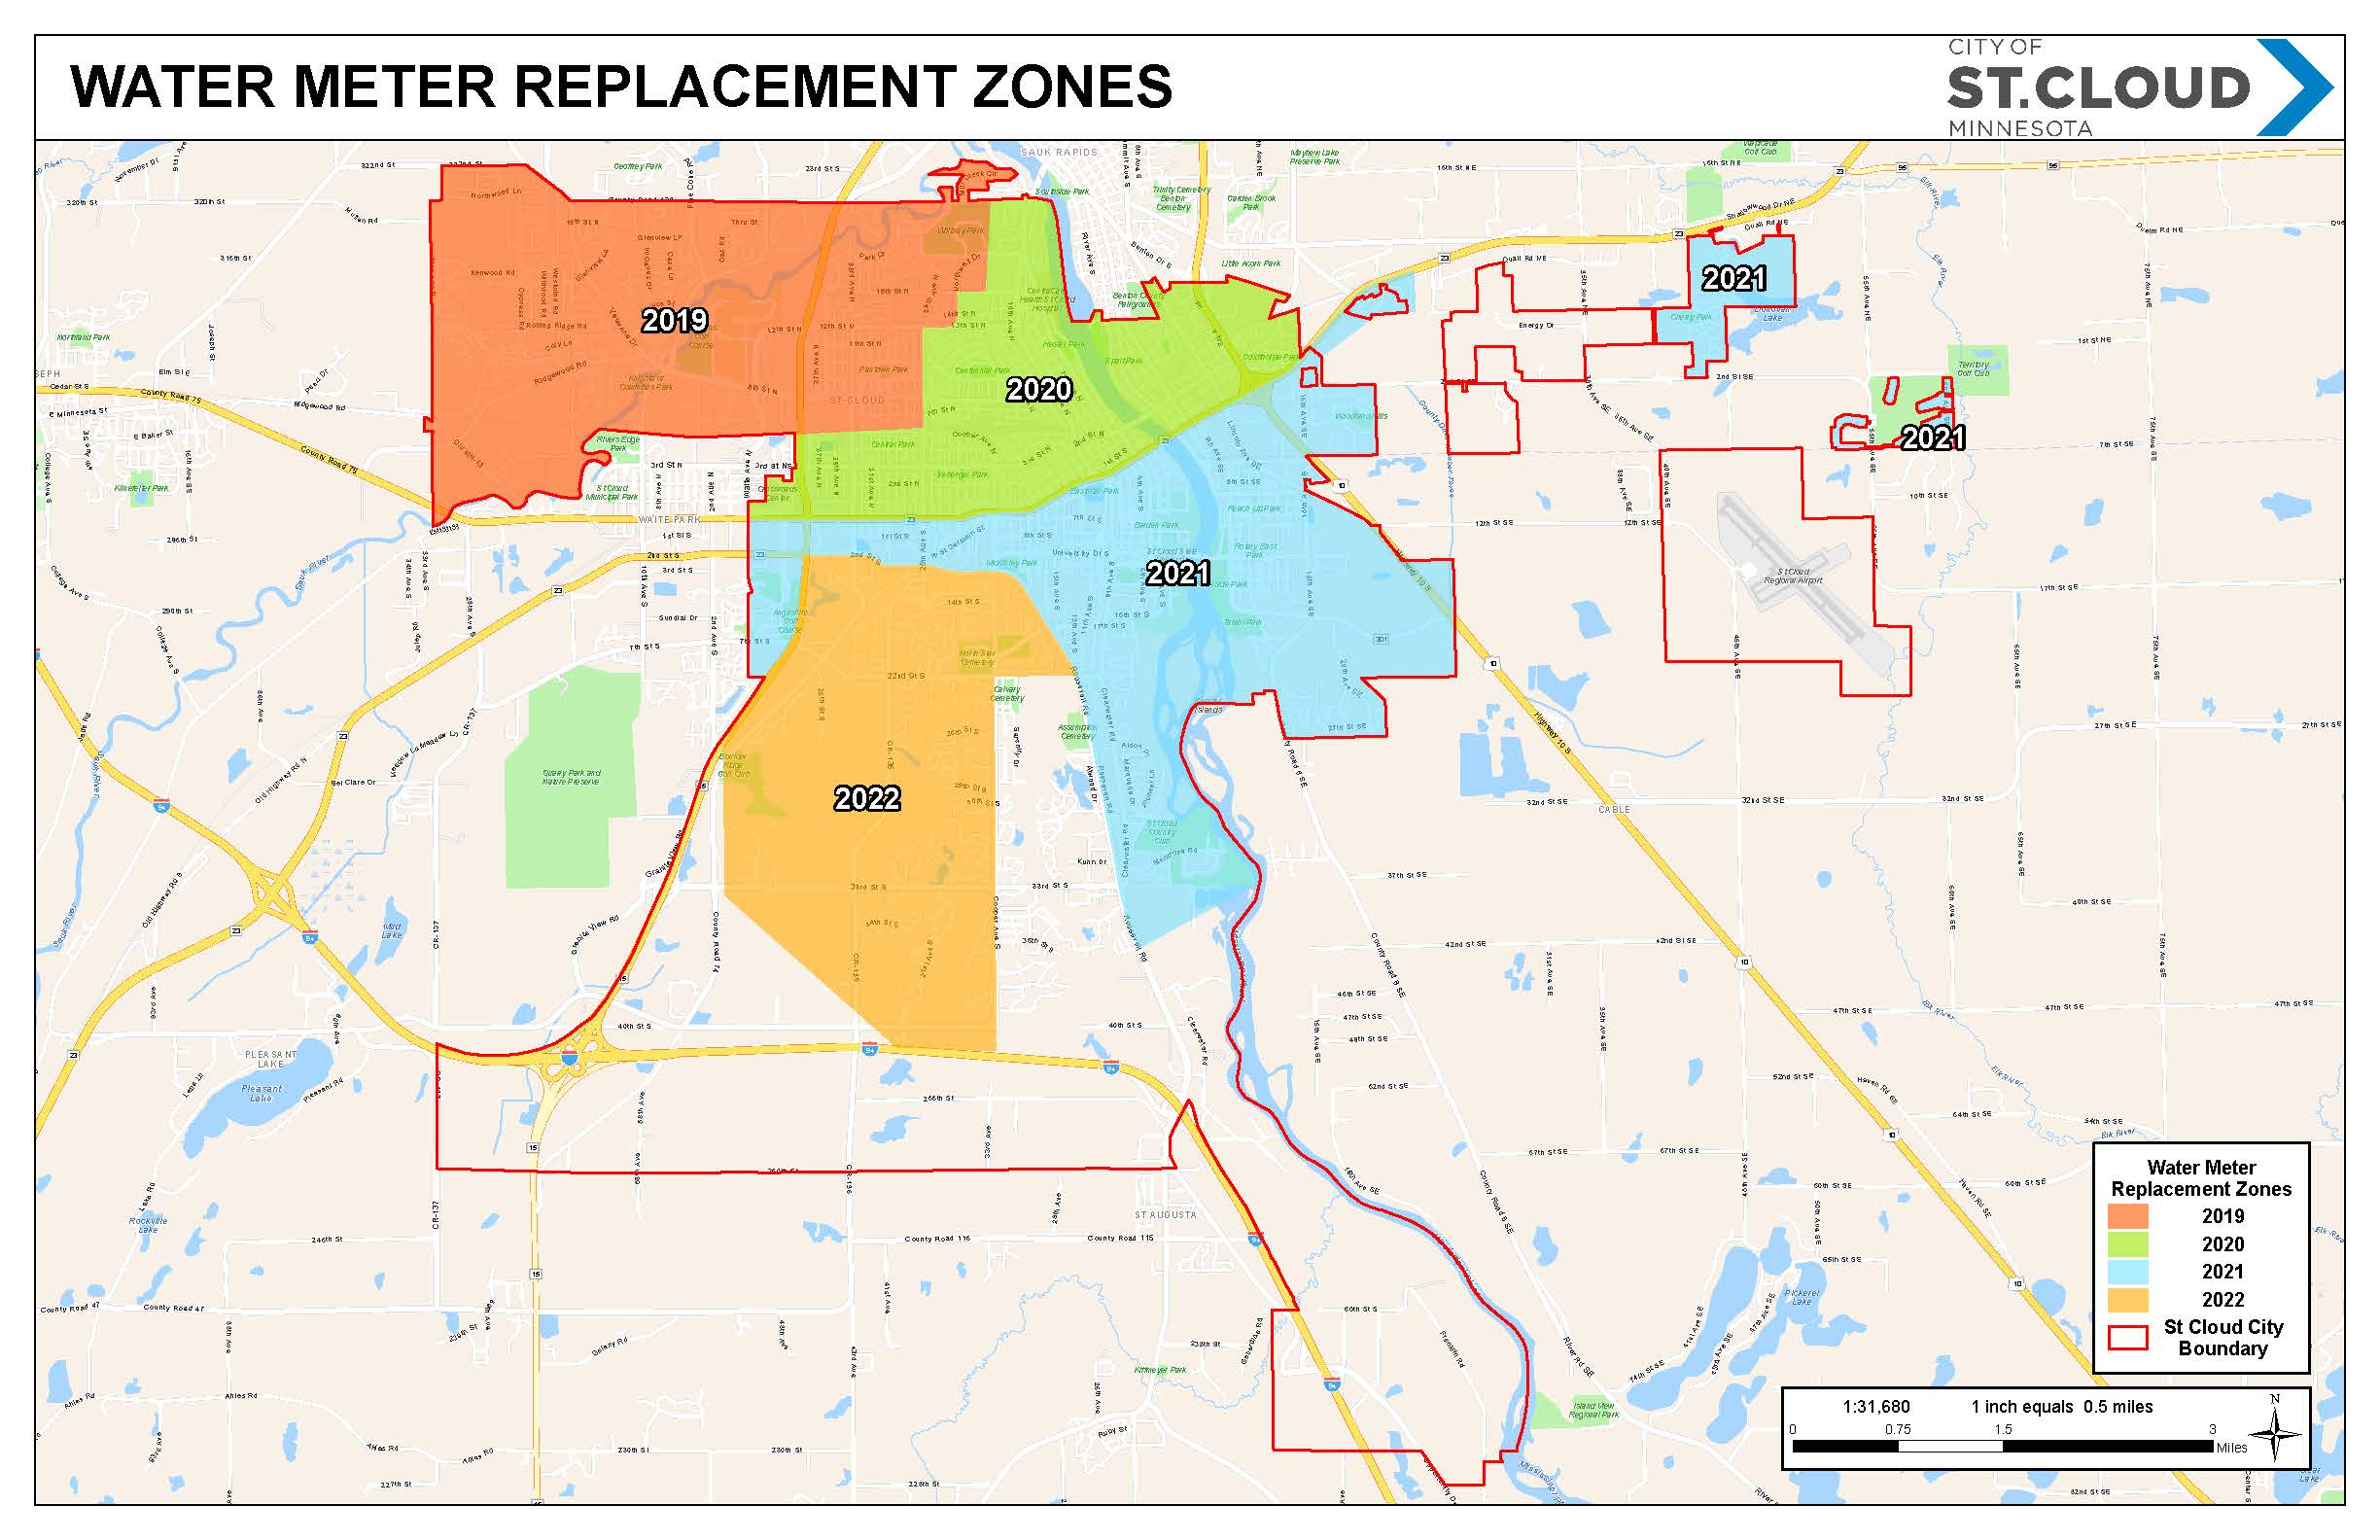 Map of meter replacement zones in St. Cloud, MN